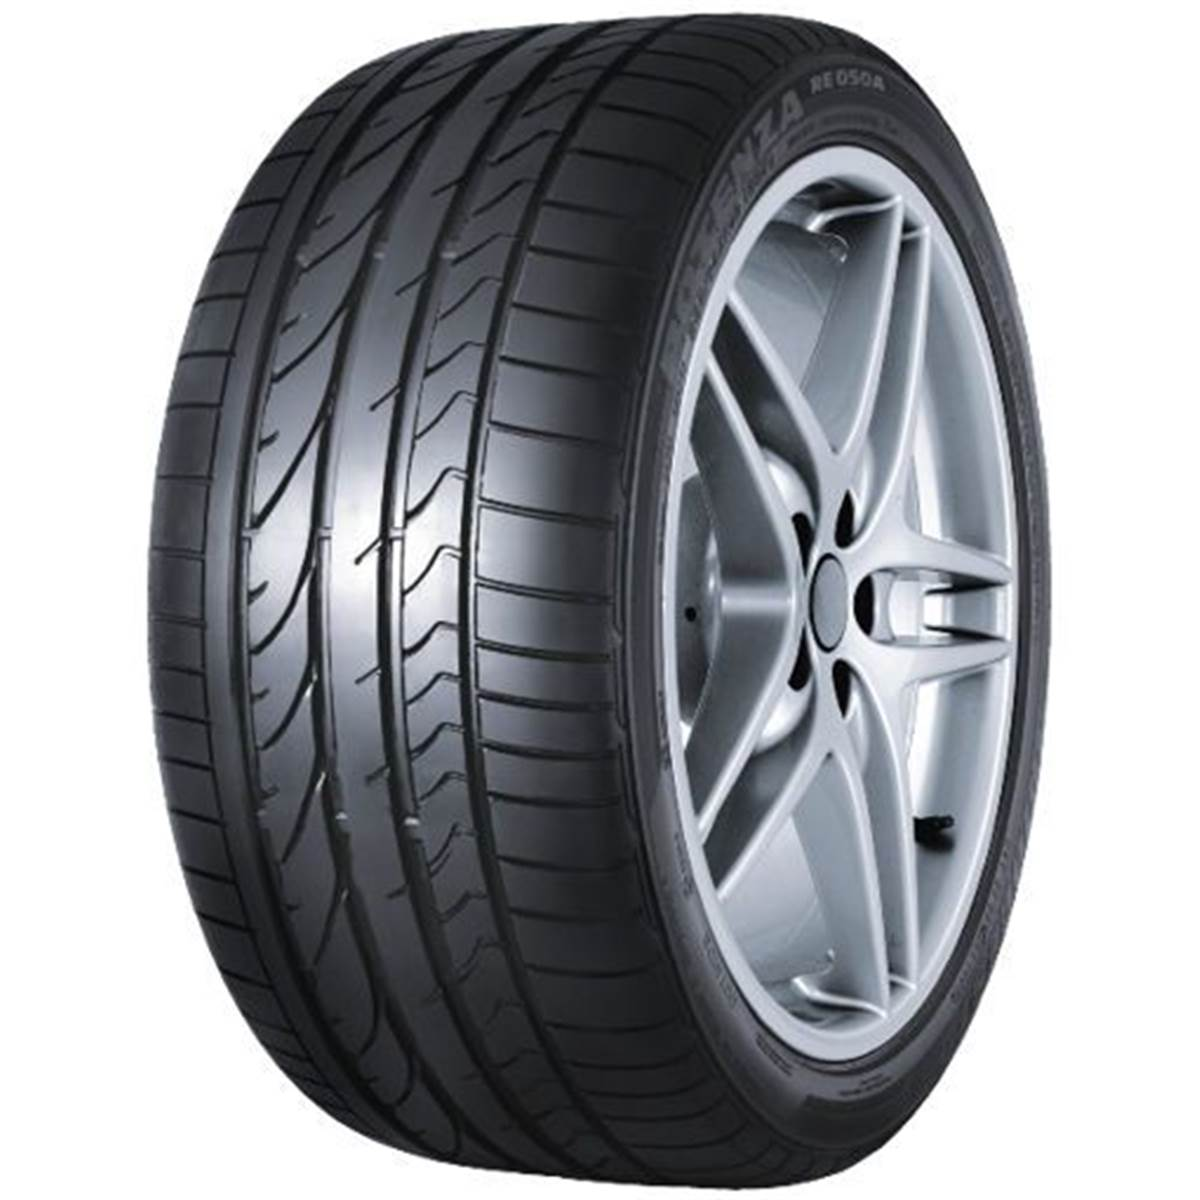 Pneu Bridgestone 295/35R18 99Y Potenza Re050 Asymmetric